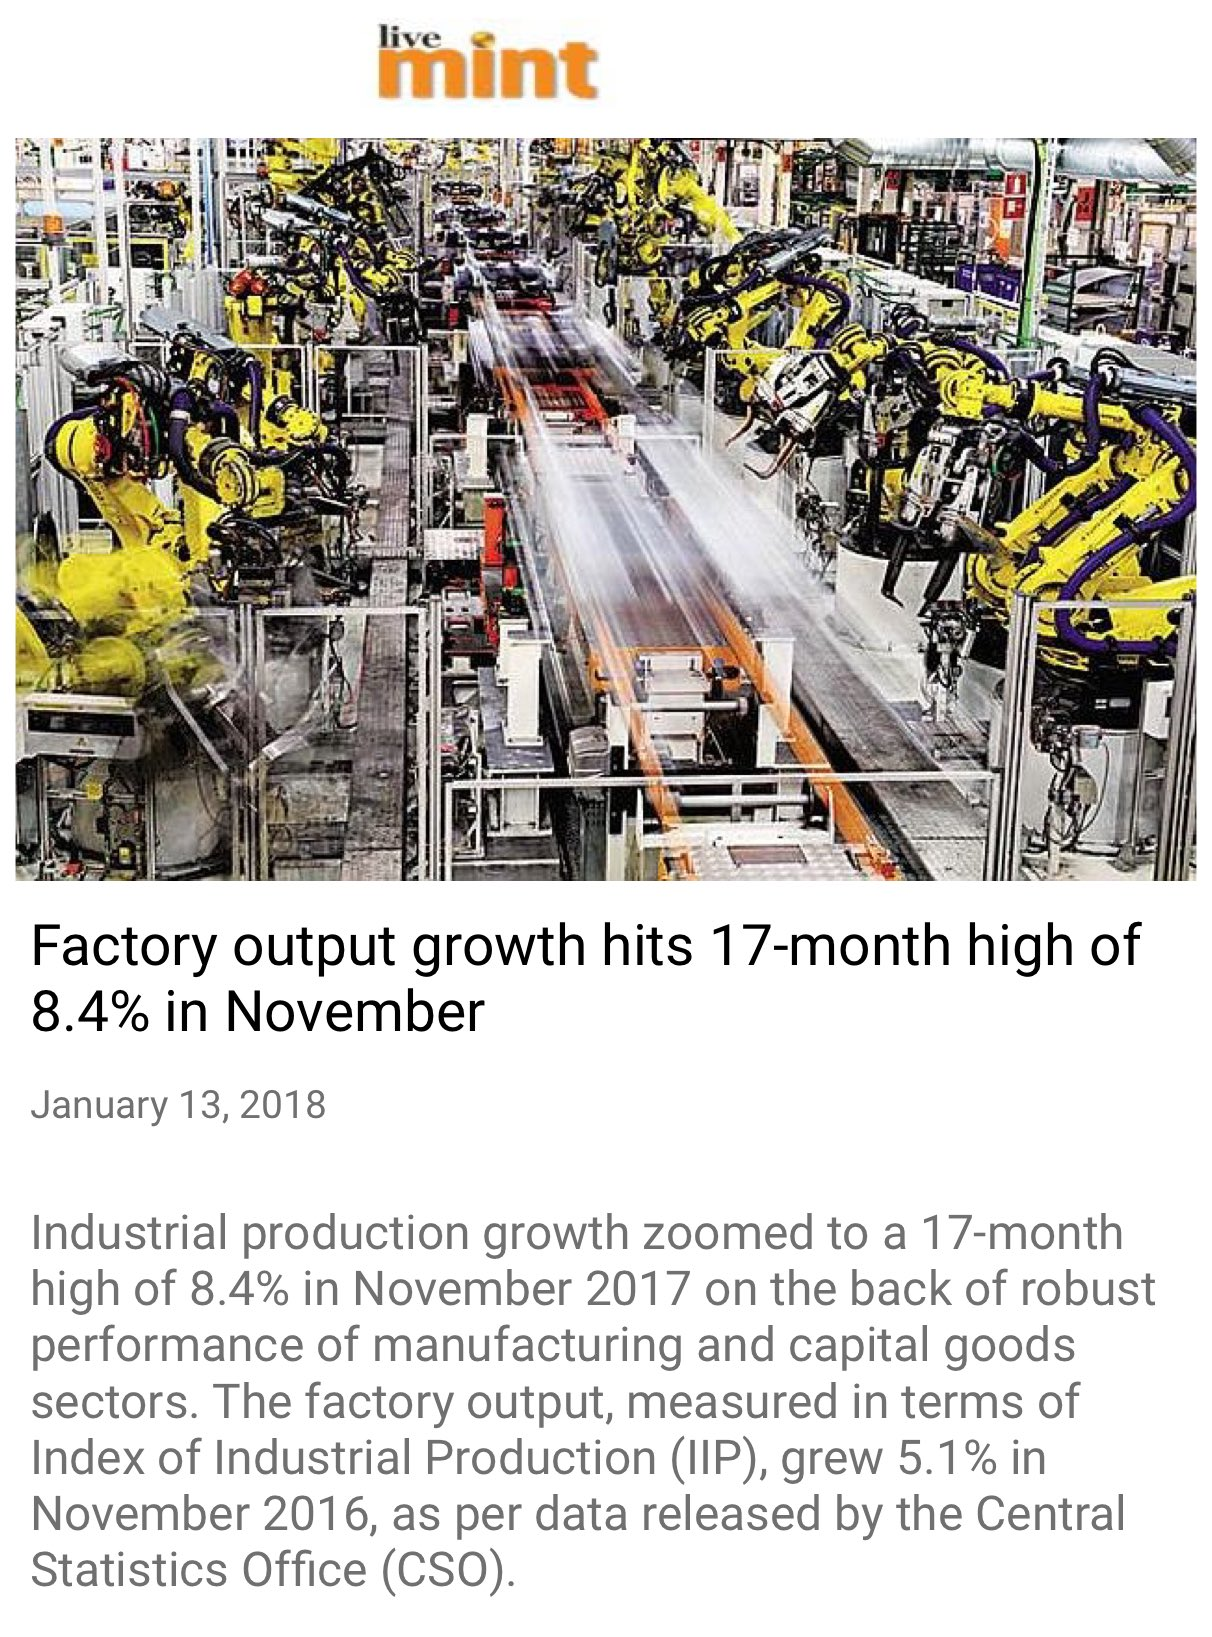 Factory output growth hits 17-month high of 8.4% in November https://t.co/O6l6PuwlEE  via NMApp https://t.co/FreSCx154X